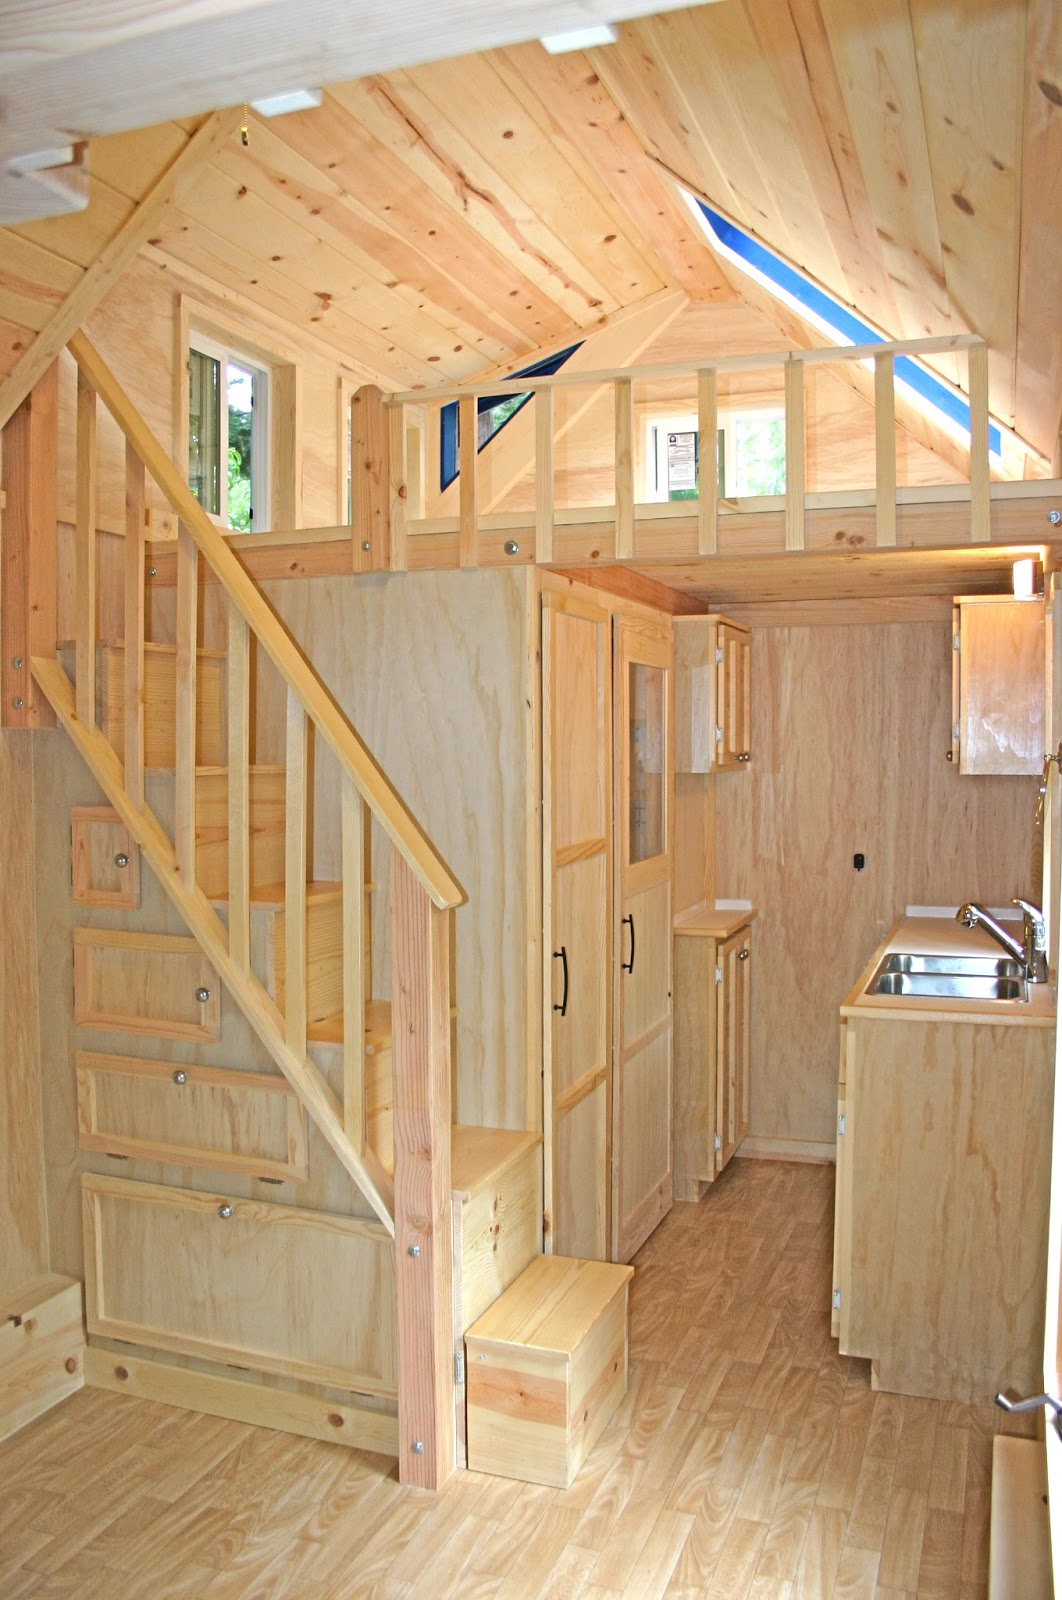 Stair Designs For Small Houses Molecule Tiny Homes